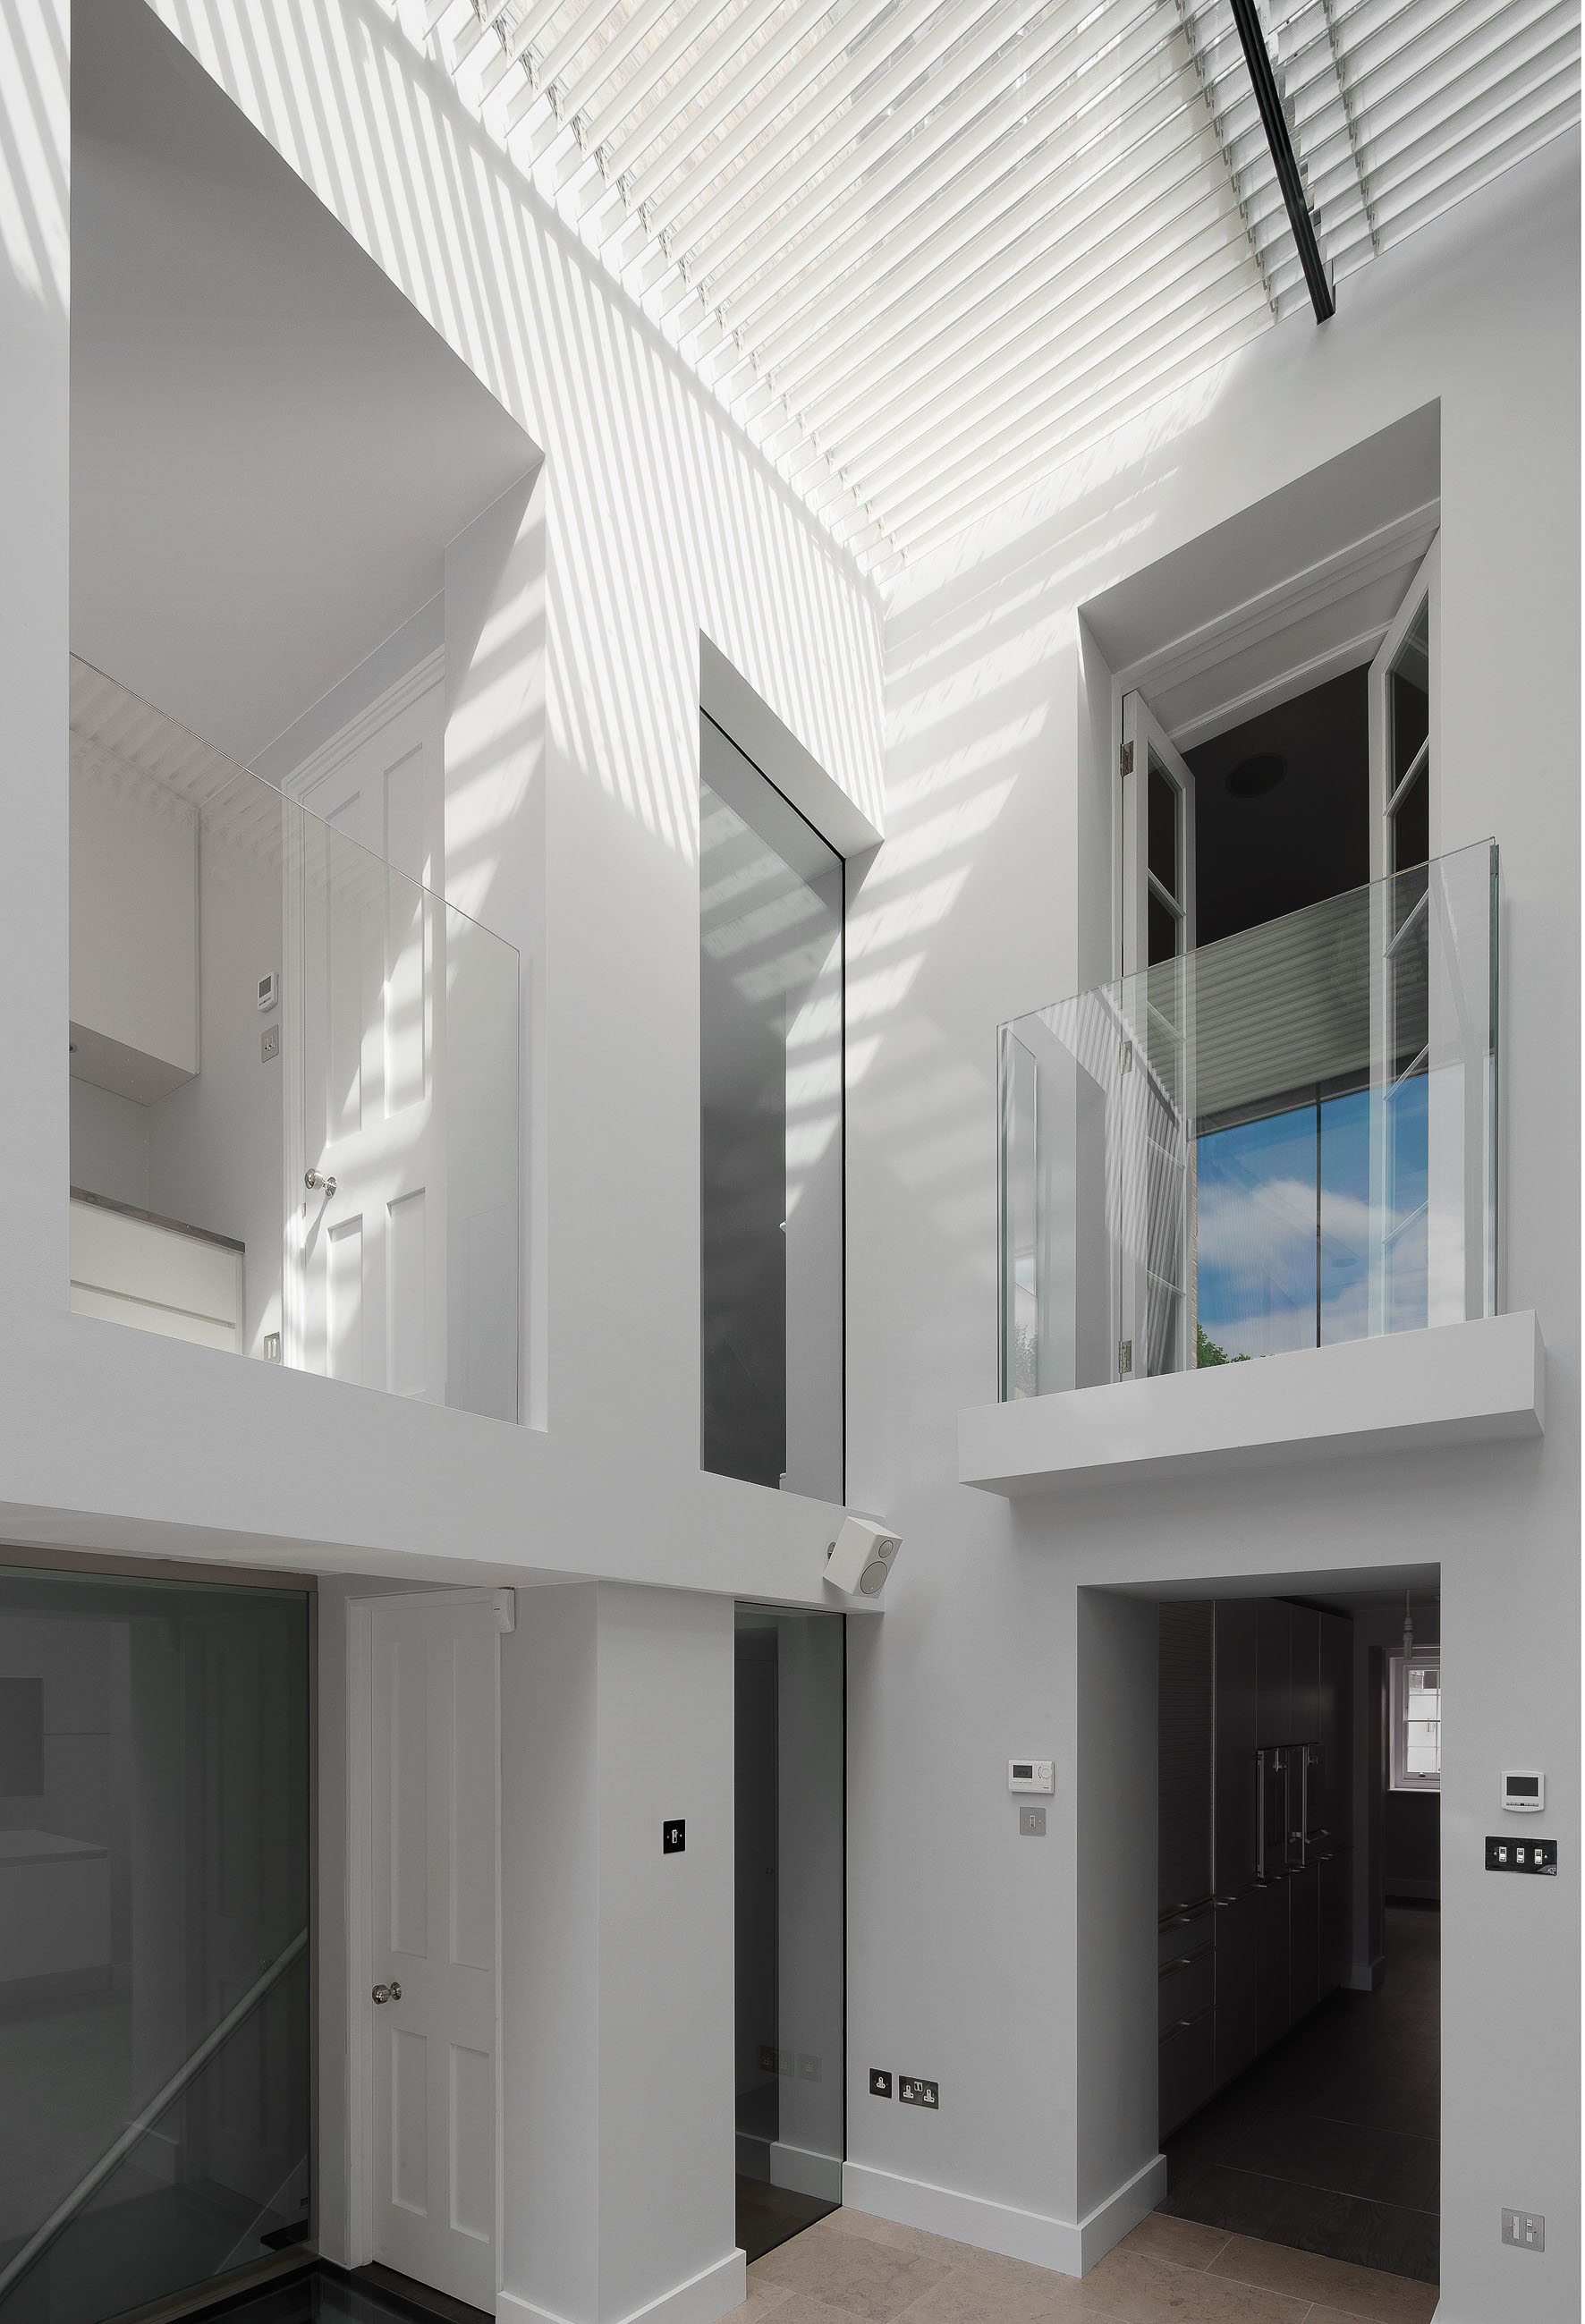 The double height living space with modern glass balustrades. The louversin the ceiling create the most wonderful shadows.